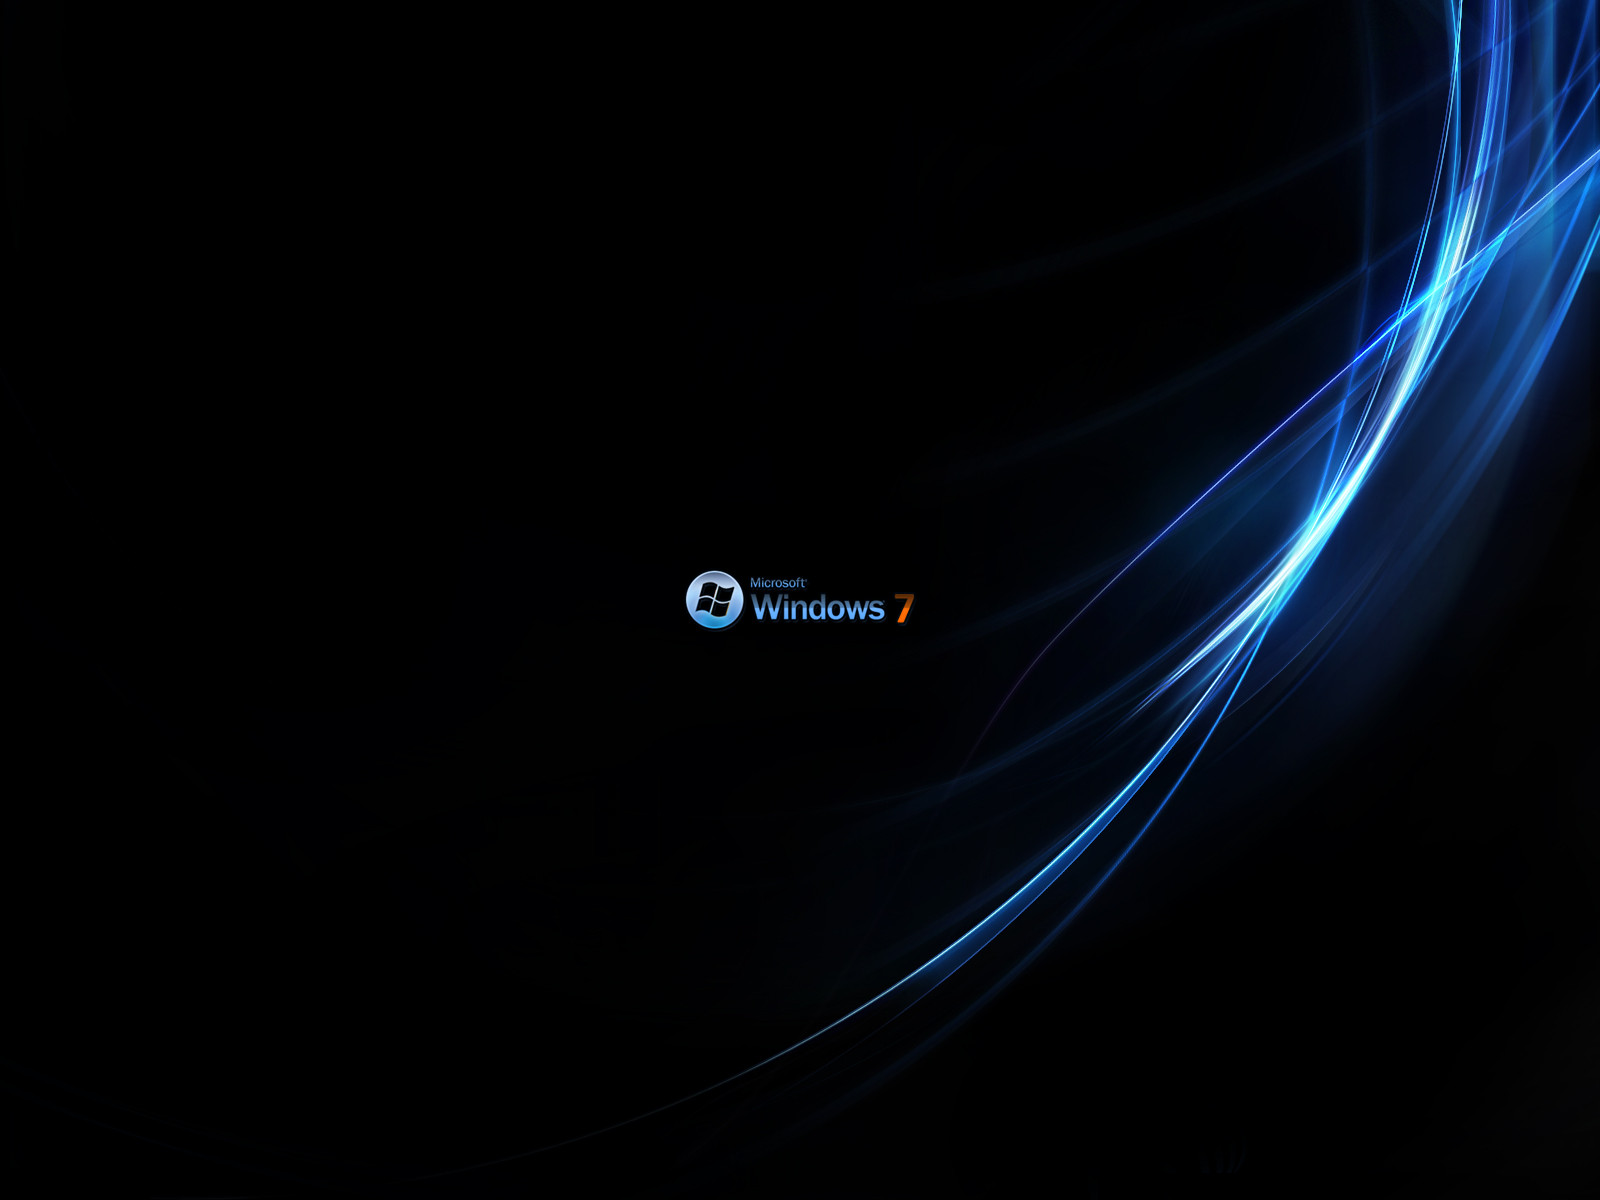 windows 7 blue orange black wallpaper